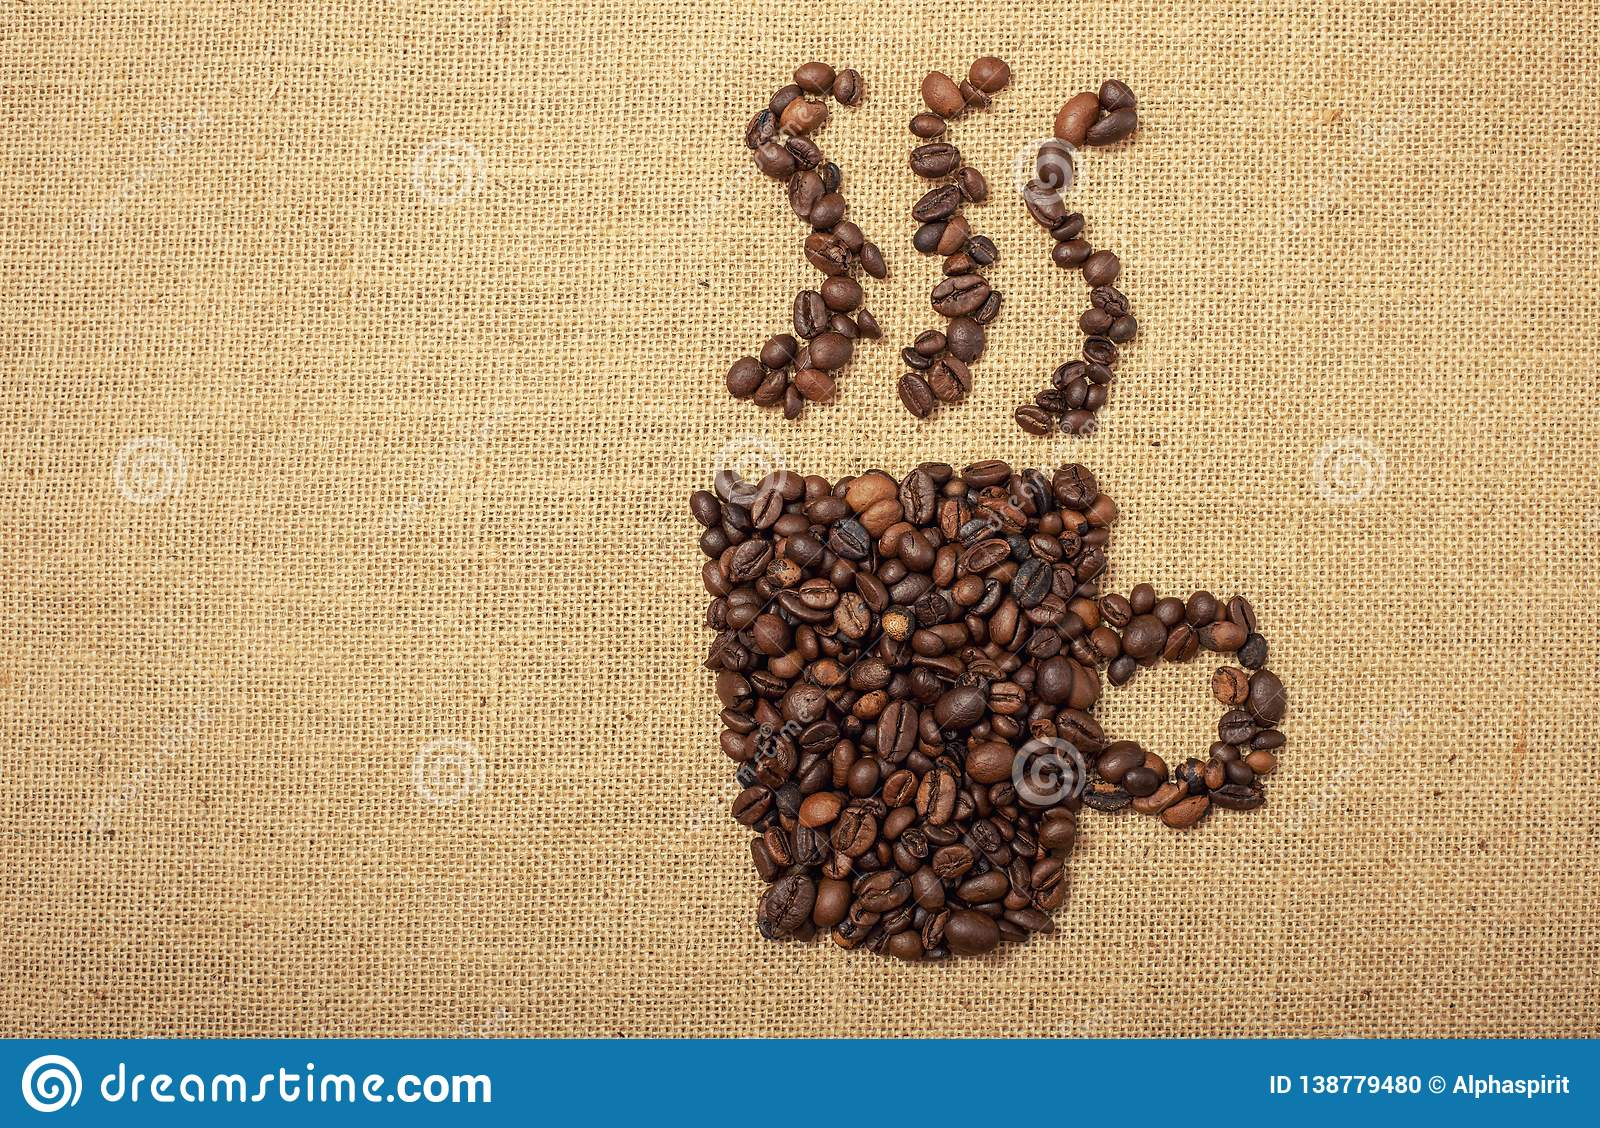 Coffee beans shaped as cup over a jute cloth